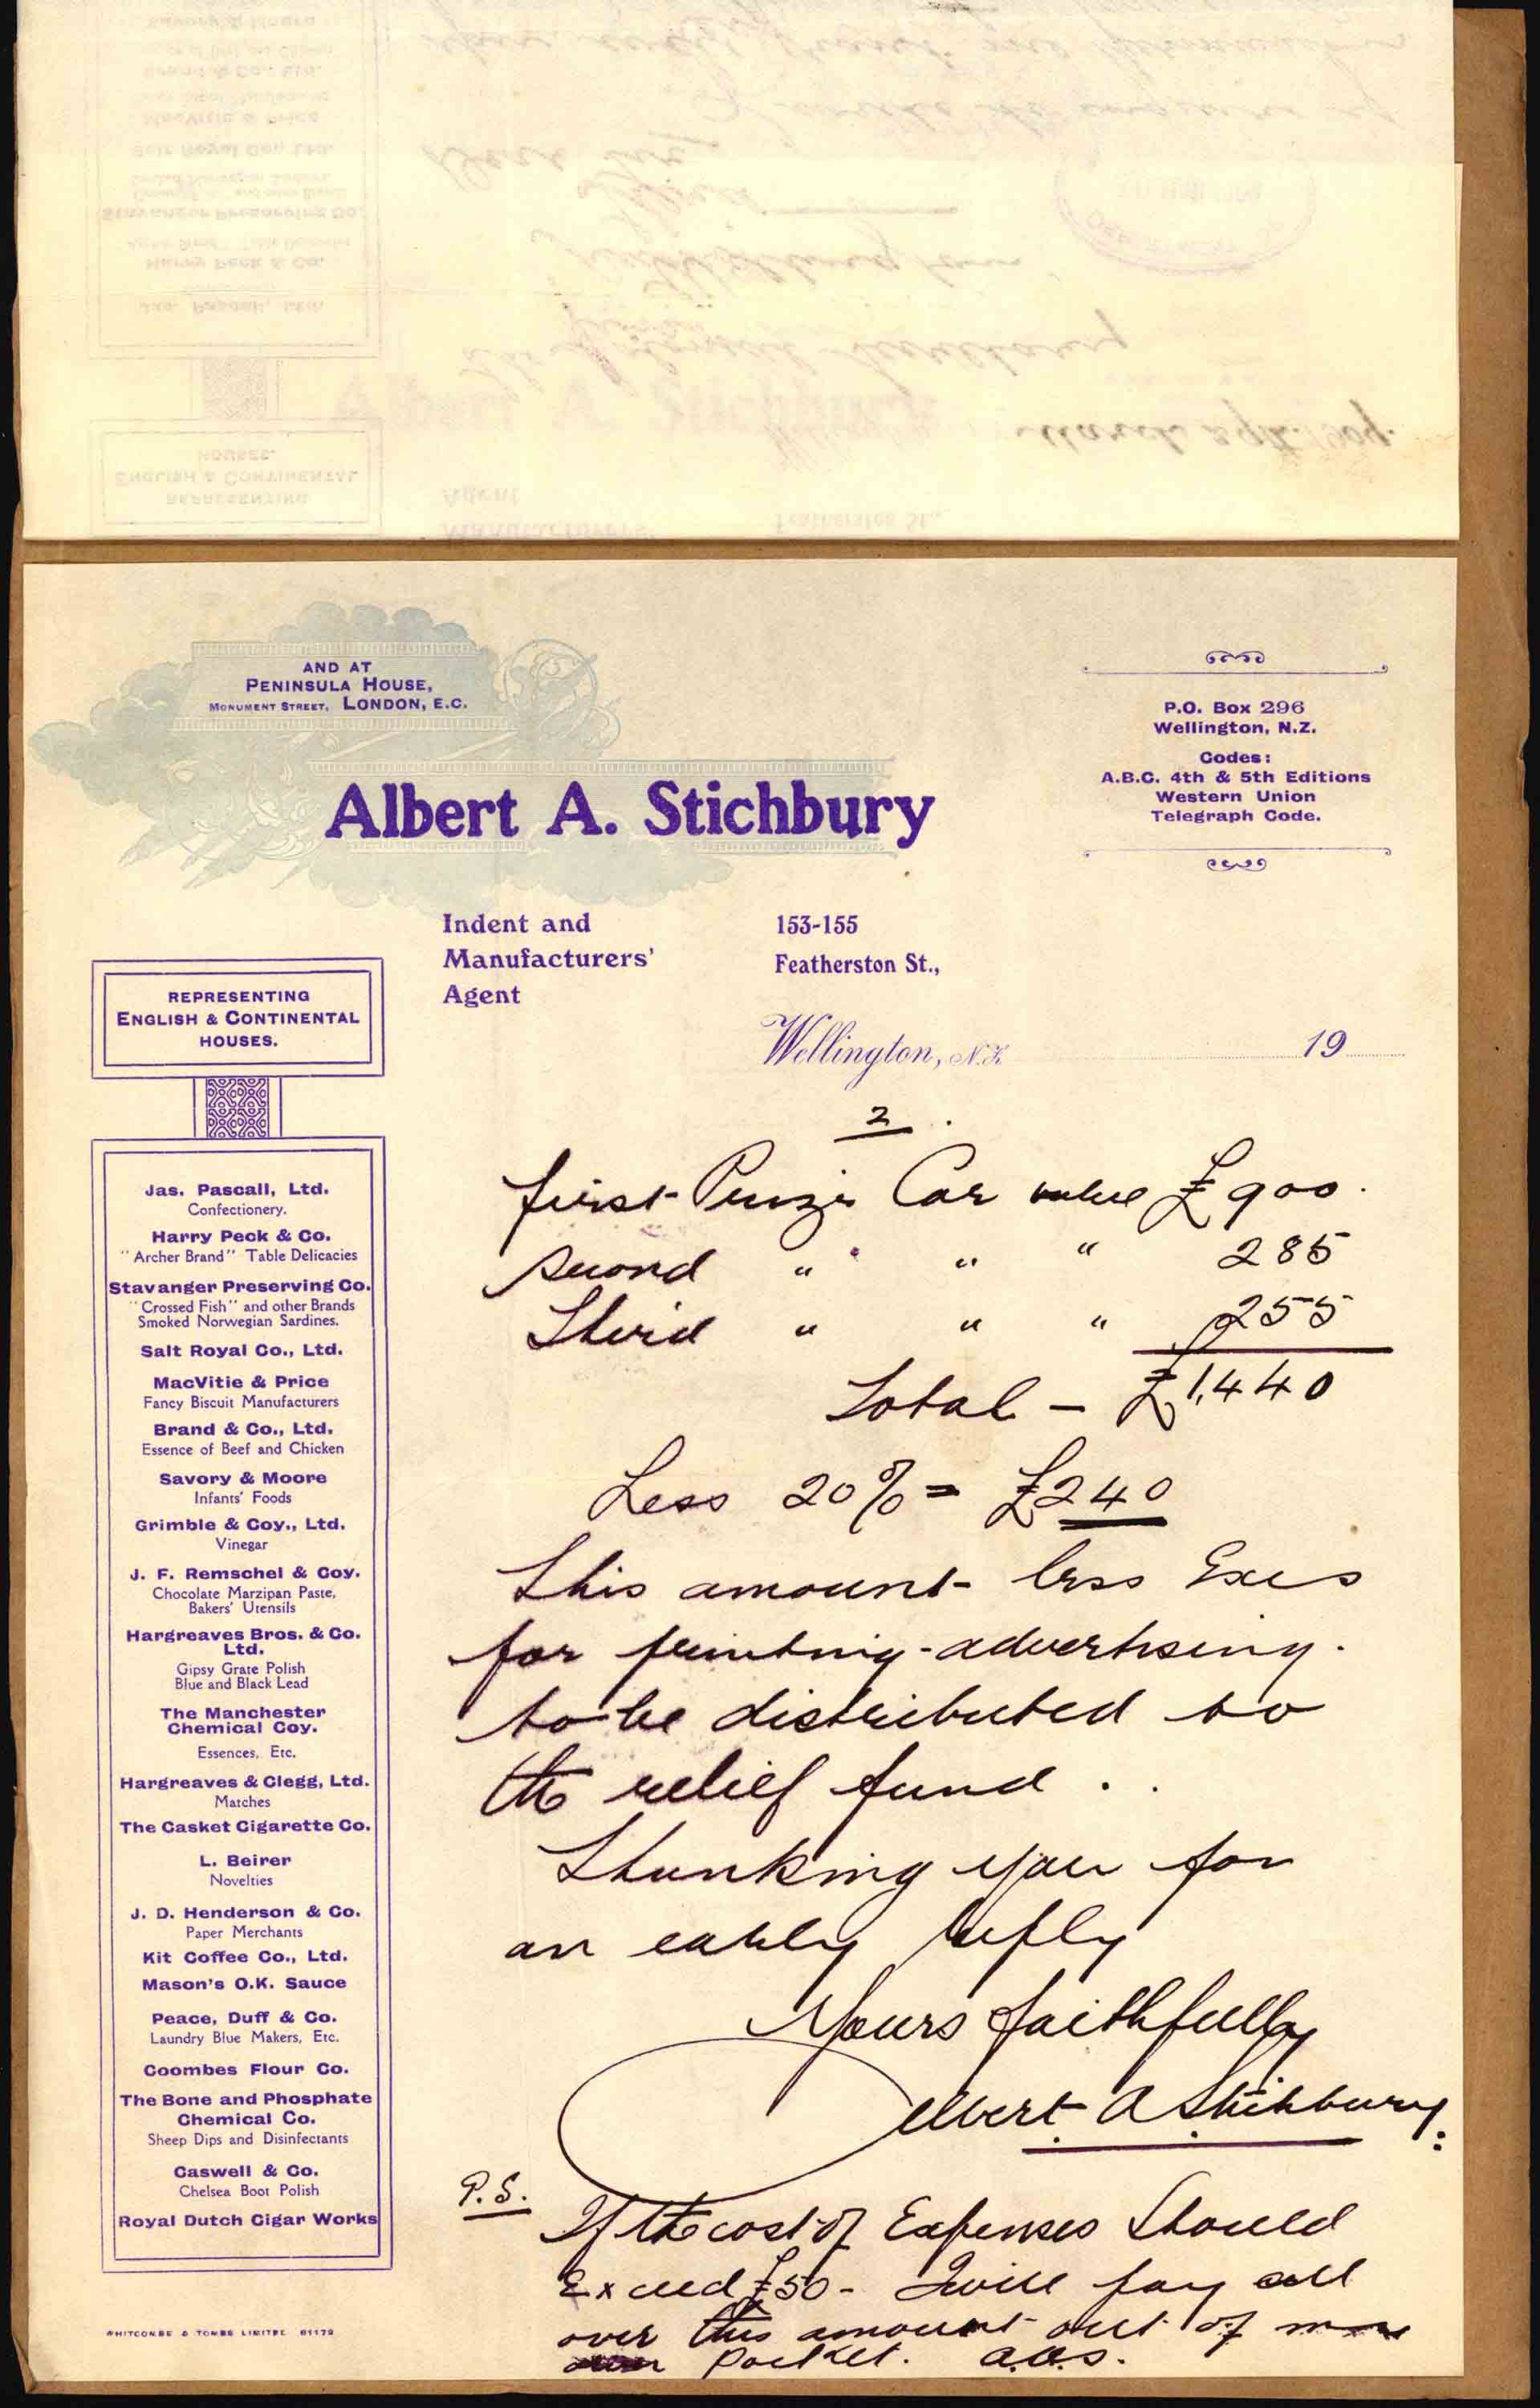 Second page of Mr. Stichburry's letter